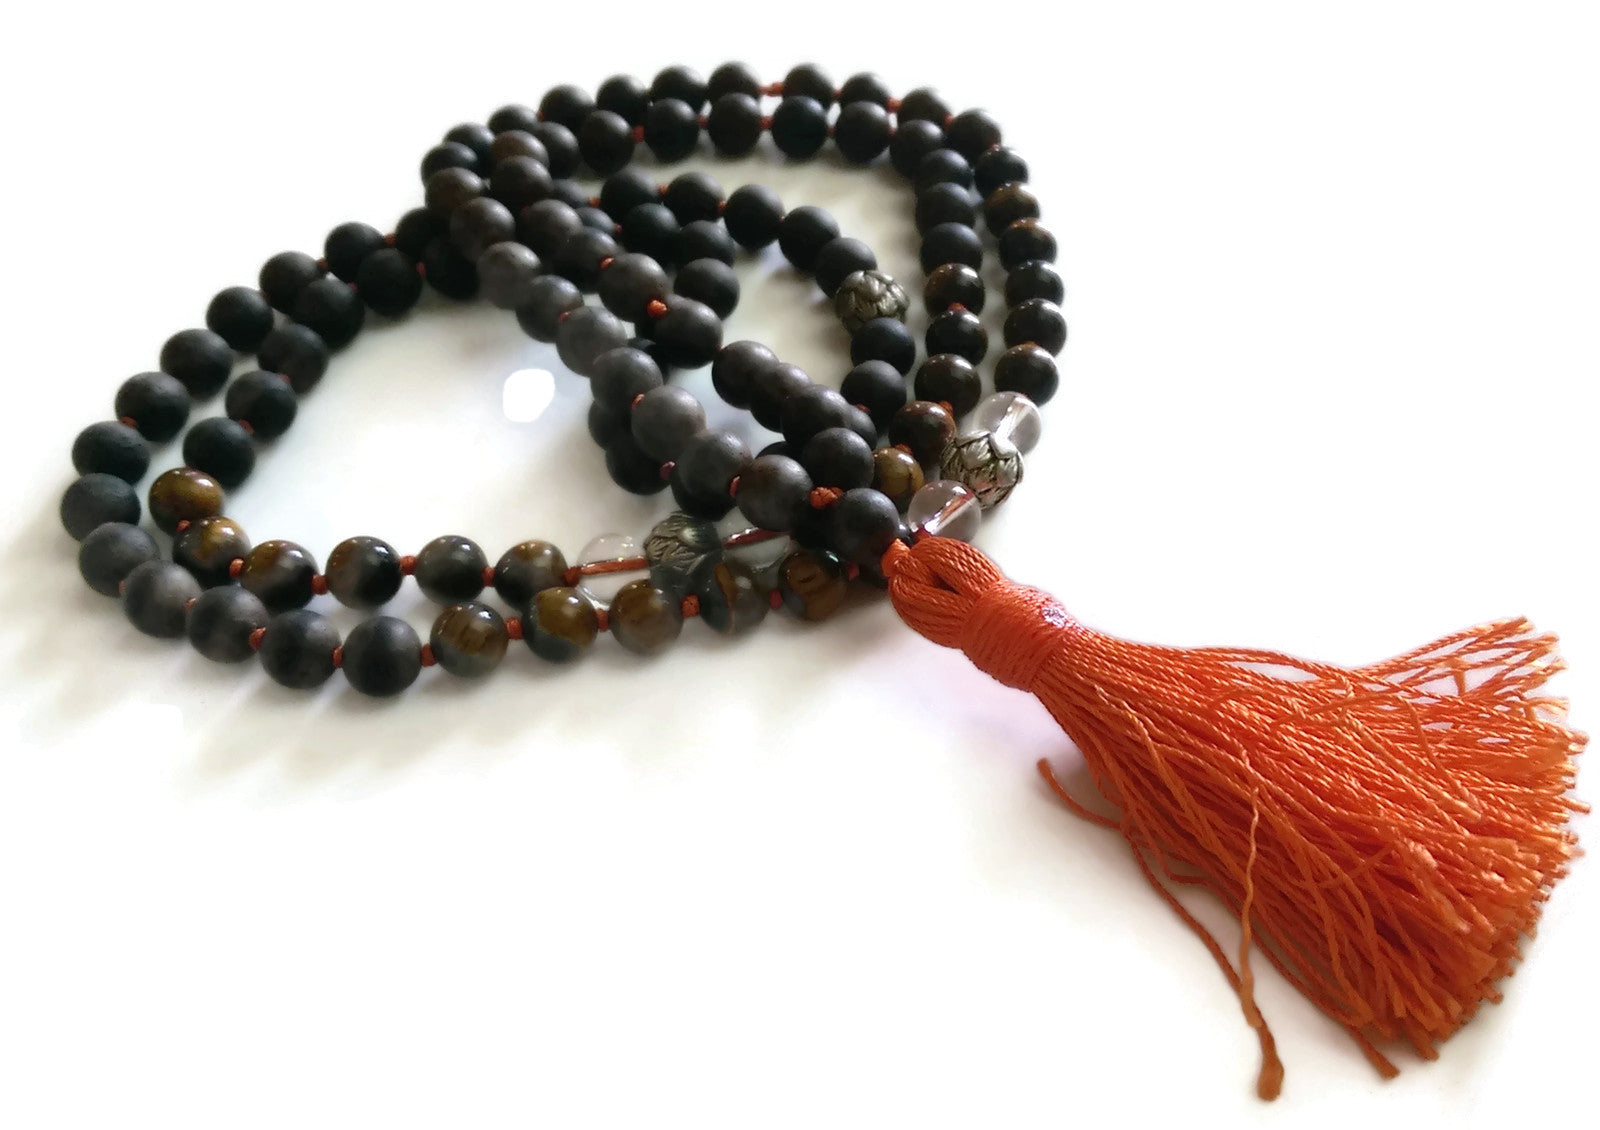 Fresh Start Chakra Collection 8mm Tiger Eye Crystal Brown Agarwood Traditional Knotted 108 Meditation Mala Necklace Solar Plexus Chakra Yoga